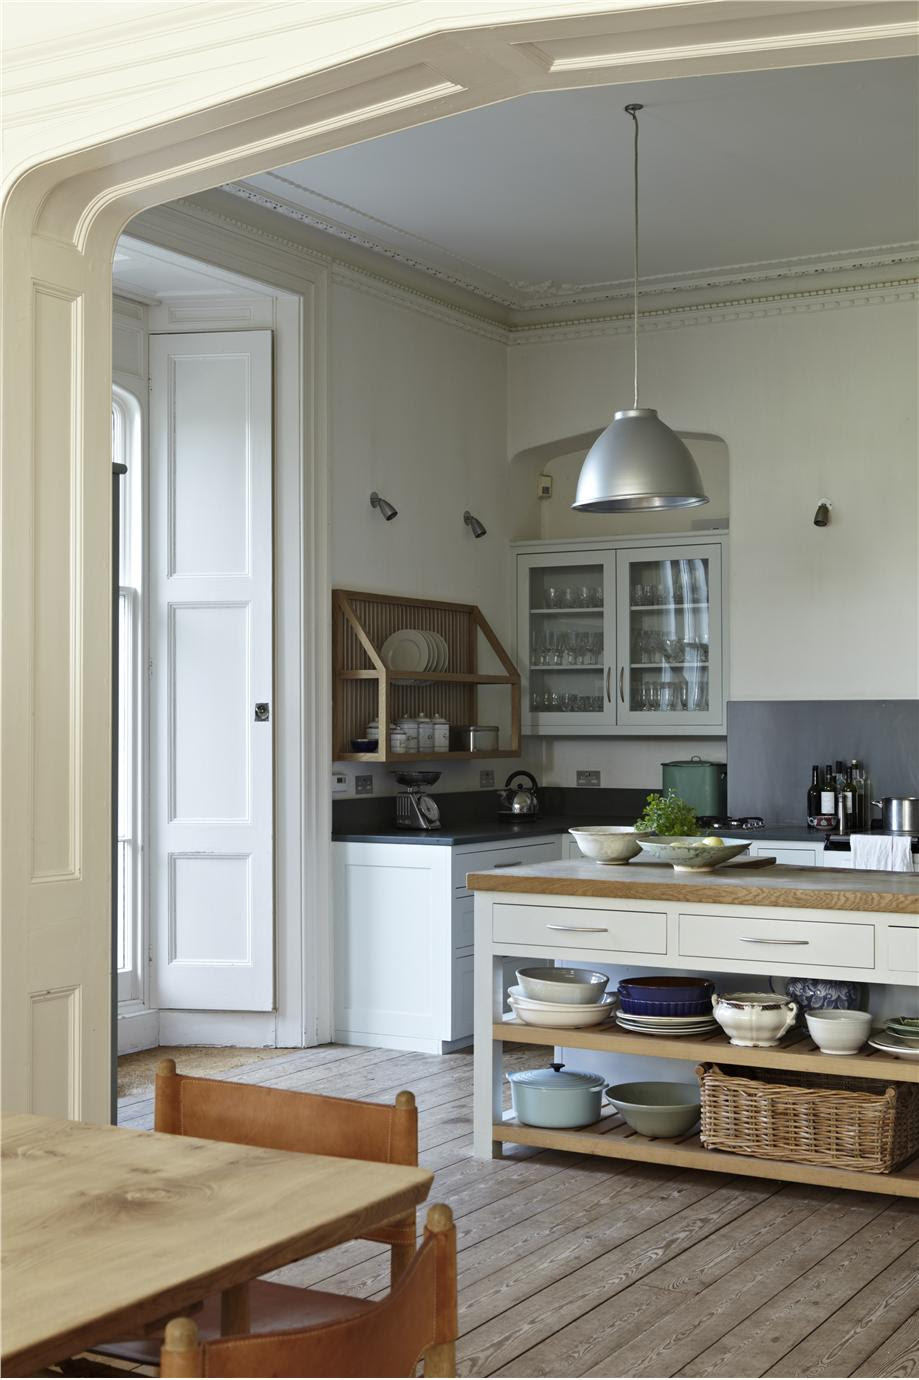 Kitchens Inspiration - PIRRELLO DESIGN ASSOCIATES ...